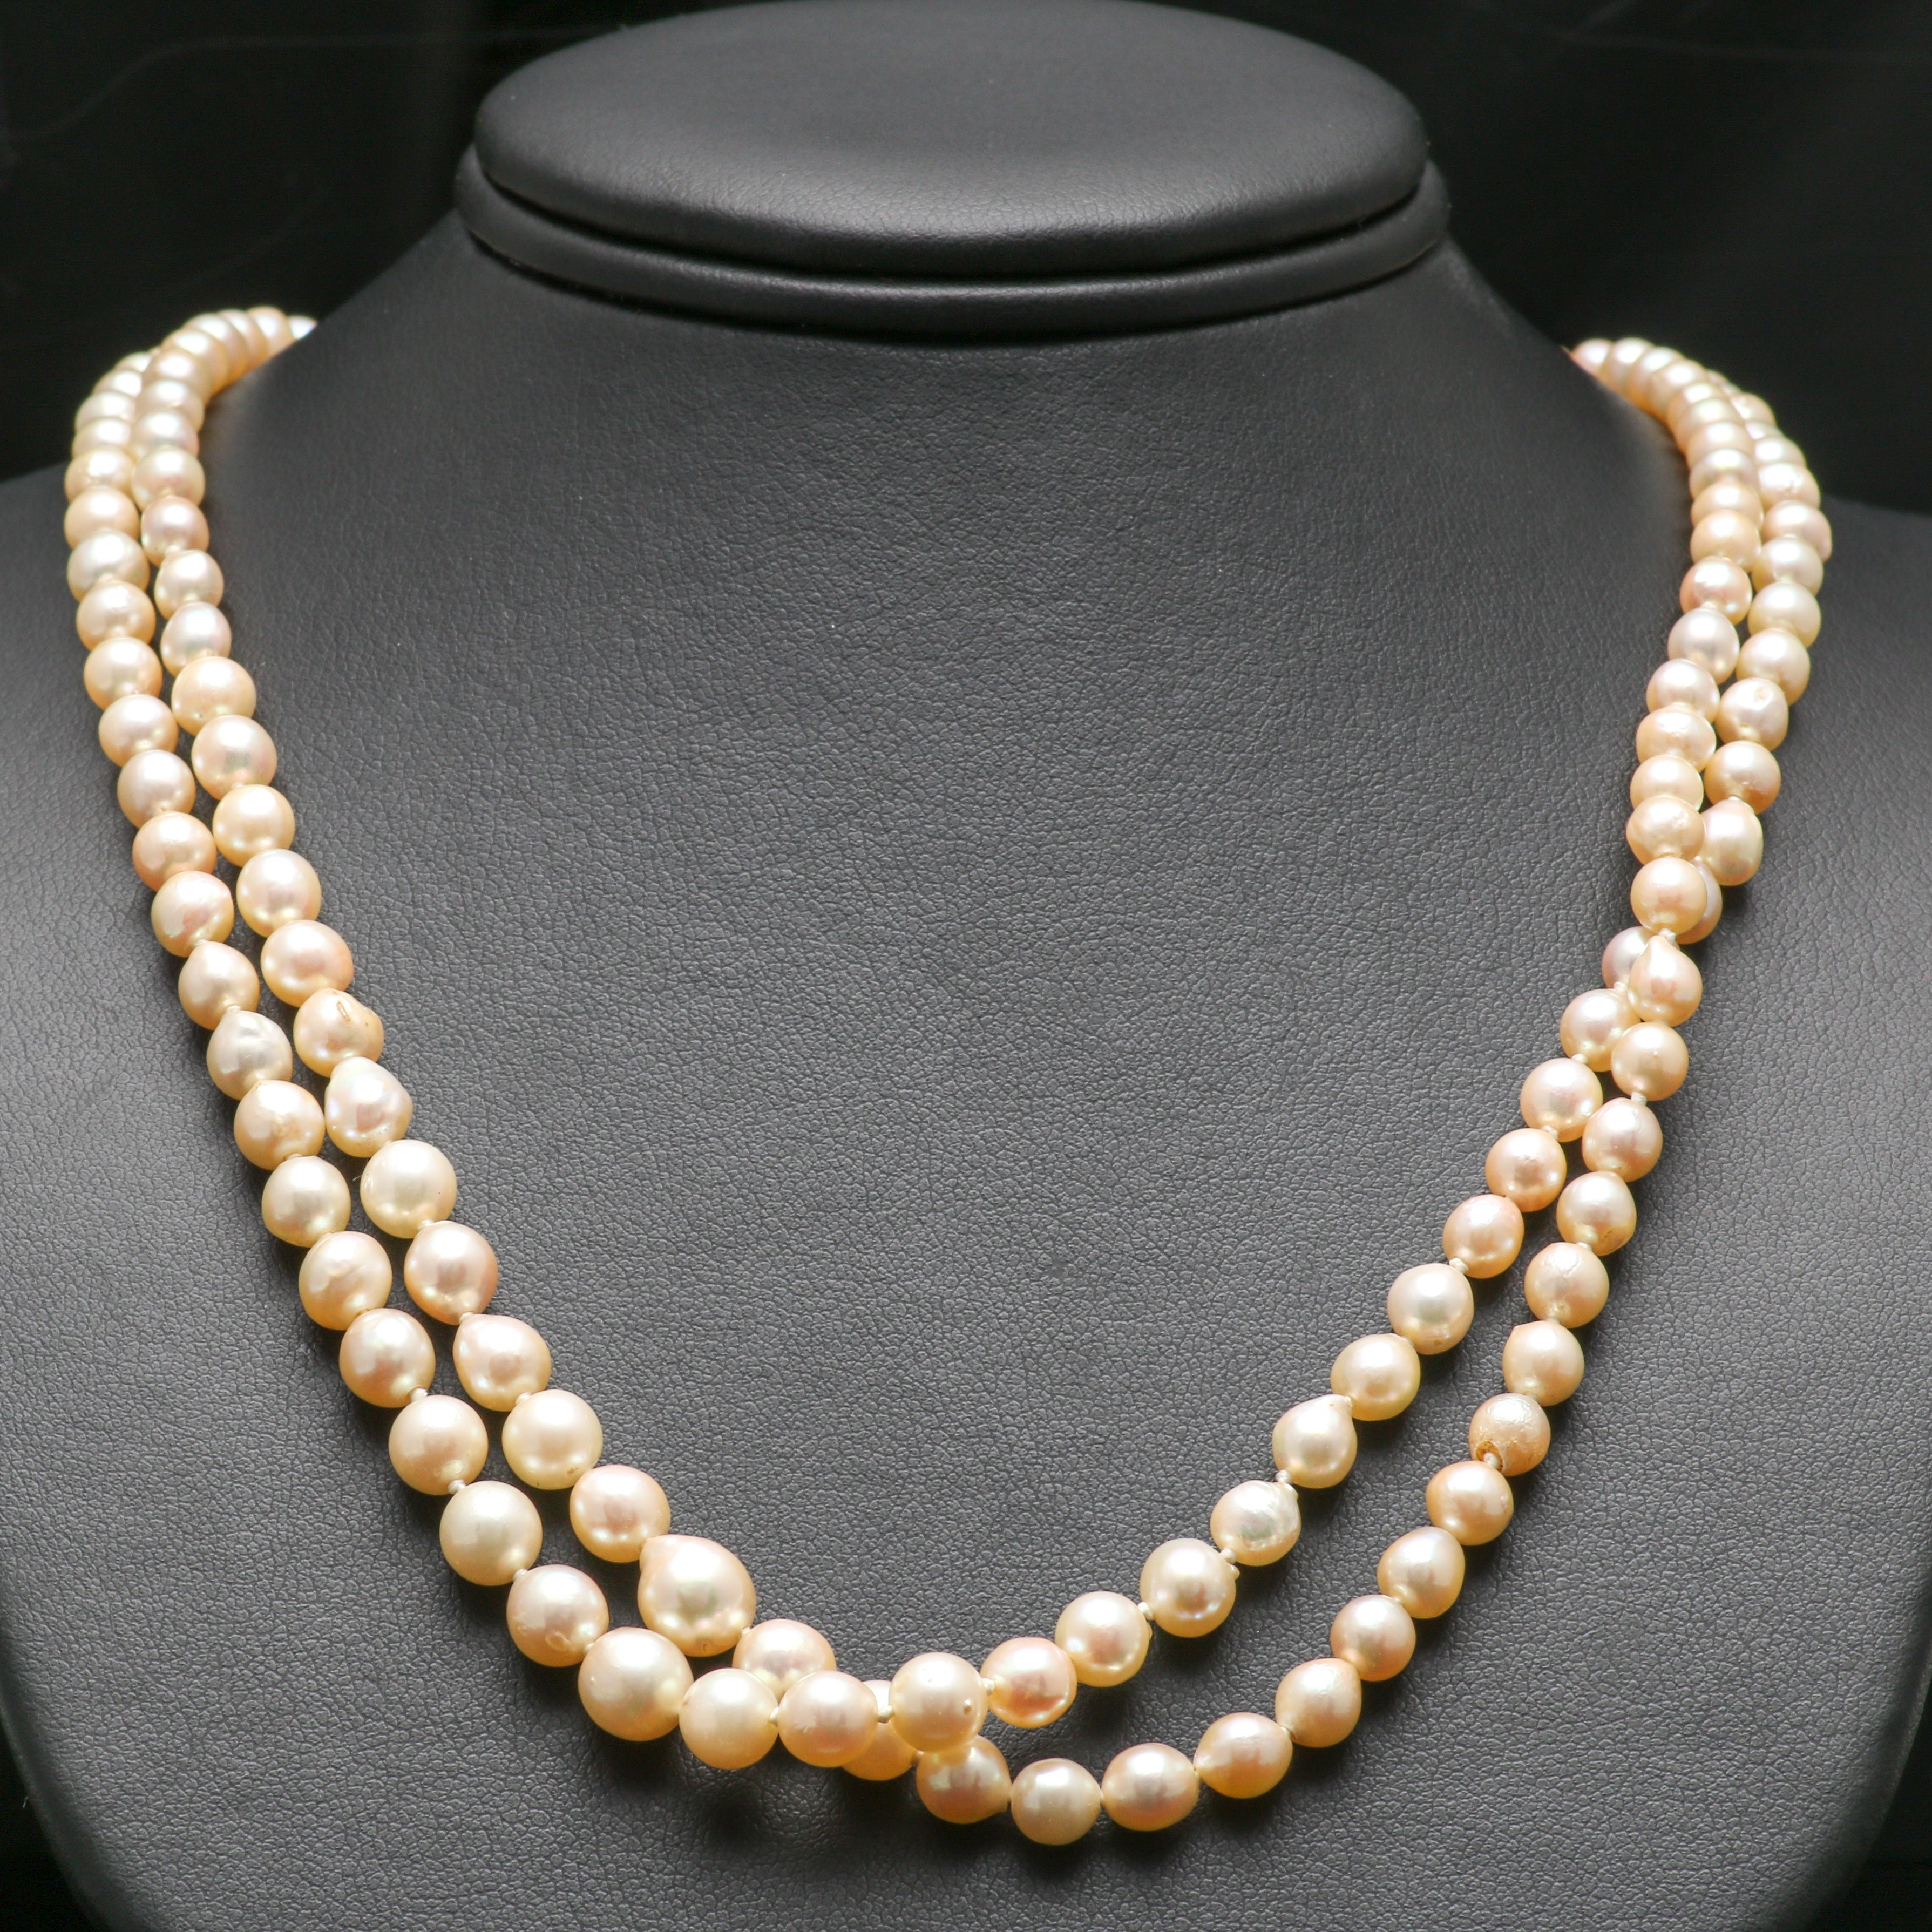 14K White Gold Cultured Pearl Double Strand Necklace